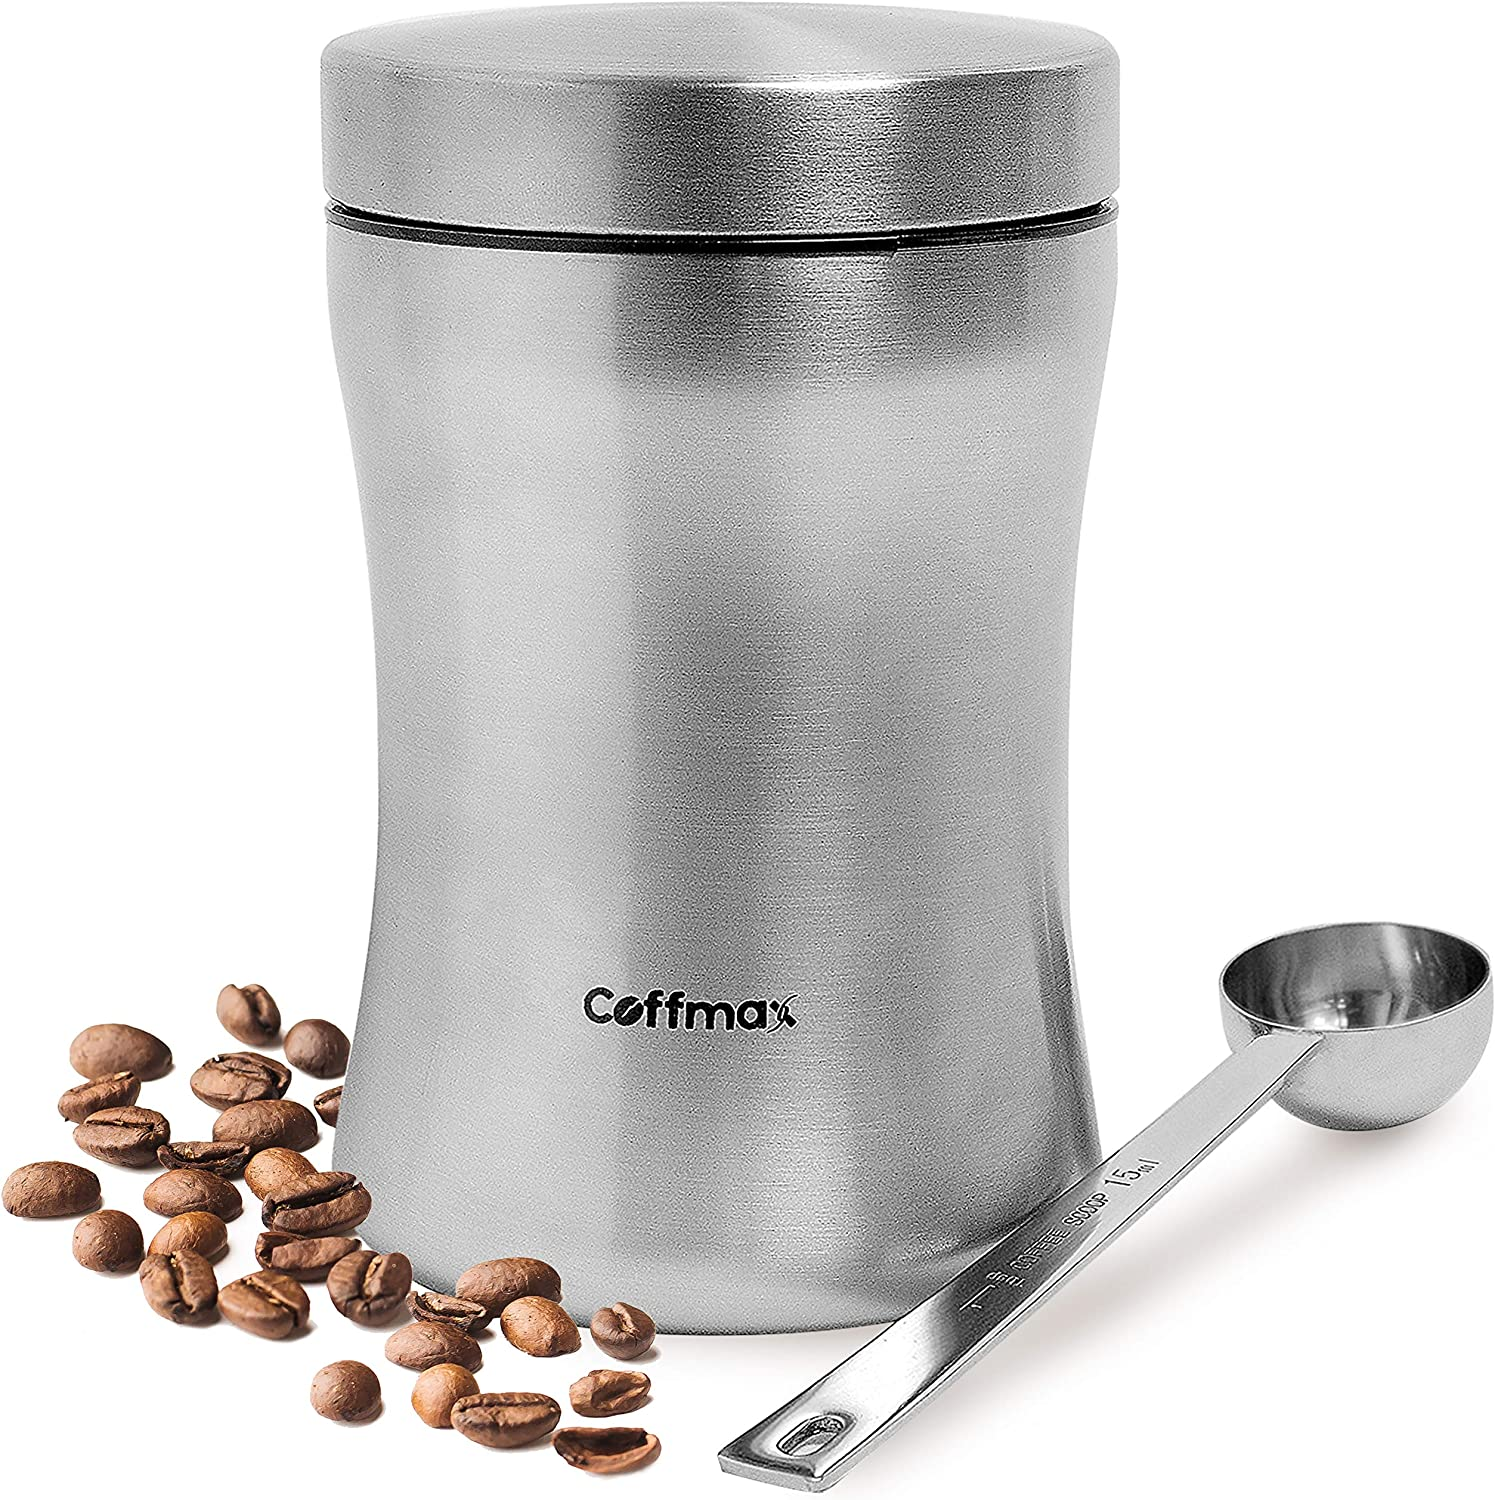 Airtight Coffee Storage Canister Keeper with Free Scoop Spoon and eBook - 12.5 oz Beans or 16 oz Ground Coffee Container Jar Holder - Premium Quality Stainless Steel Vault Tin